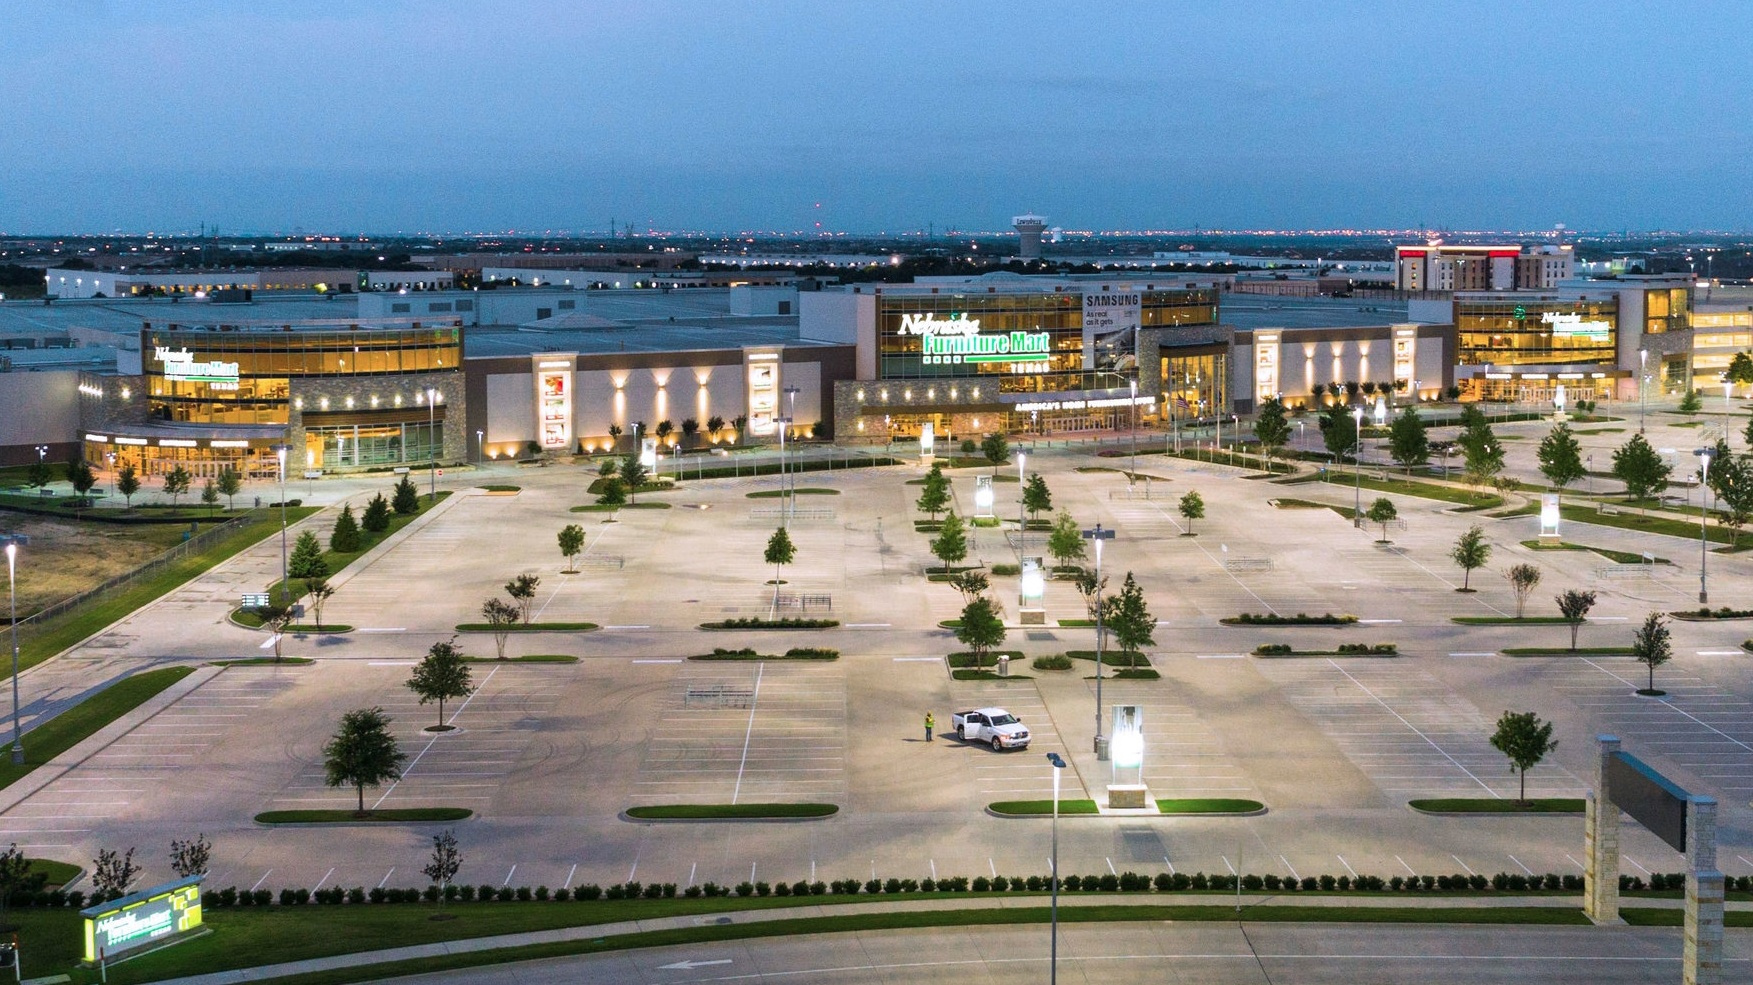 Nebraska Furniture Mart of Texas -